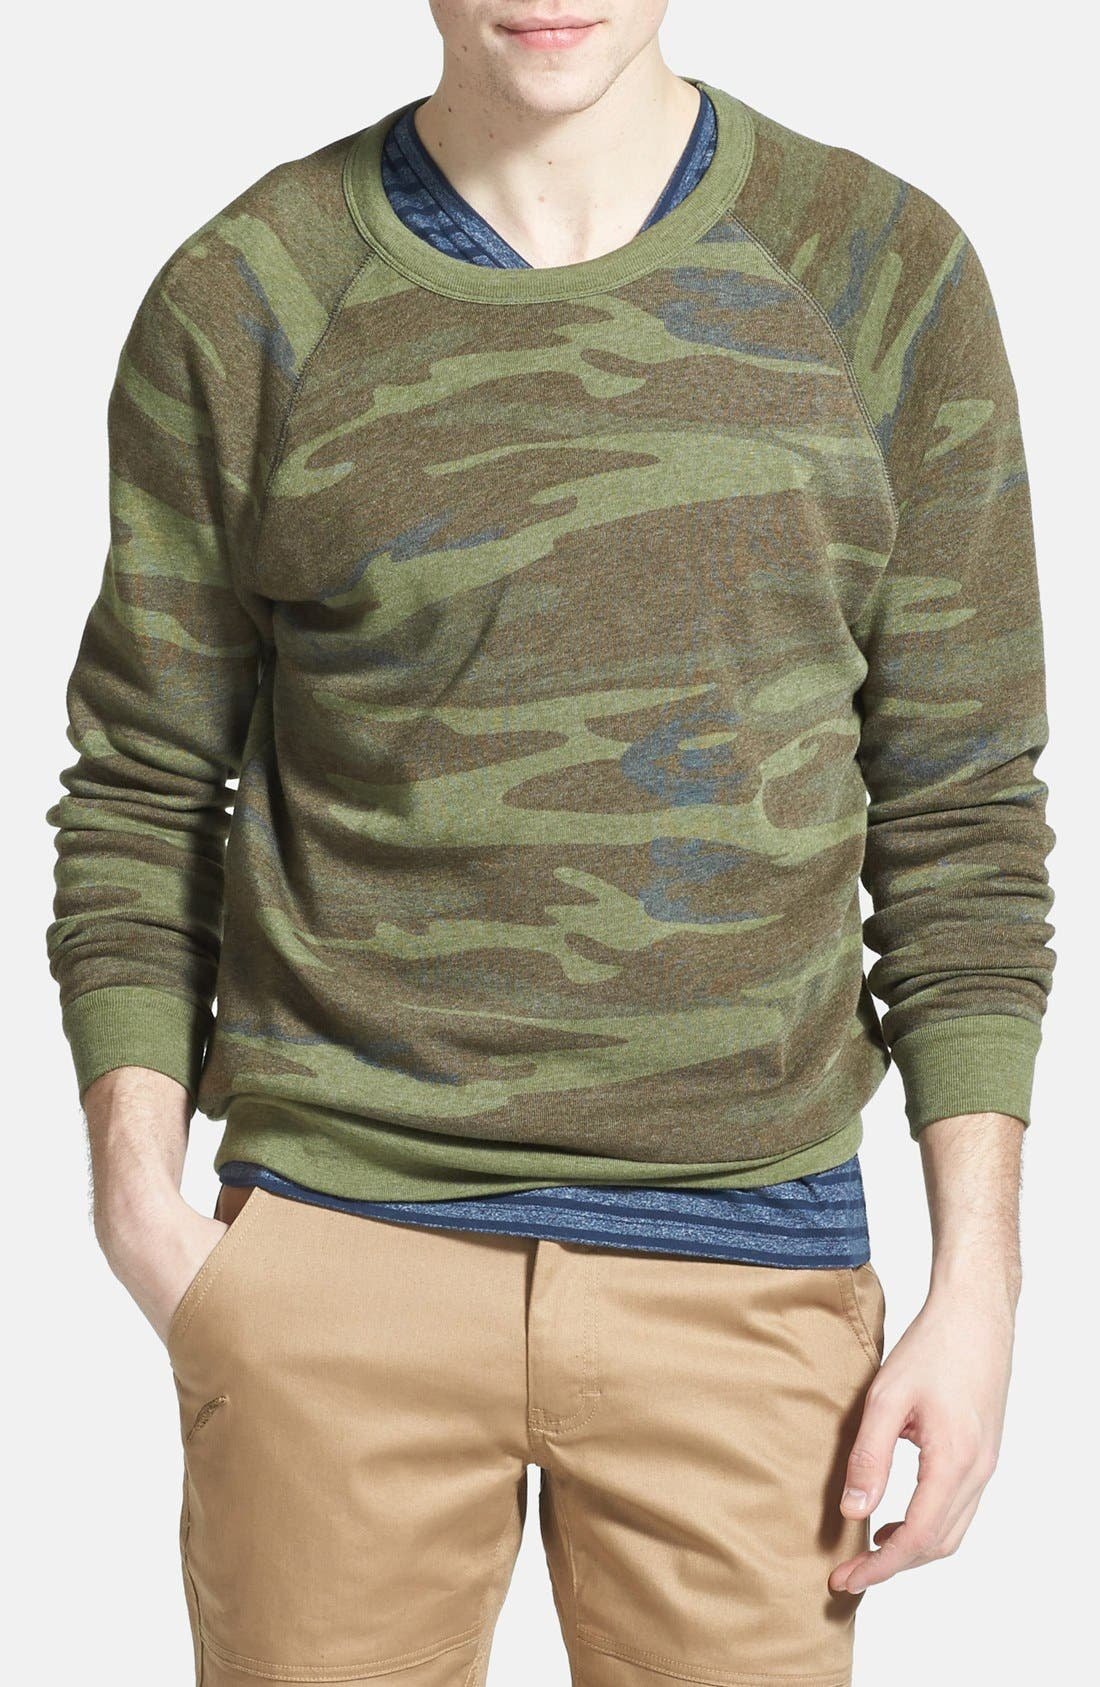 Alternative 'The Champ' Camo Print Crewneck Sweatshirt